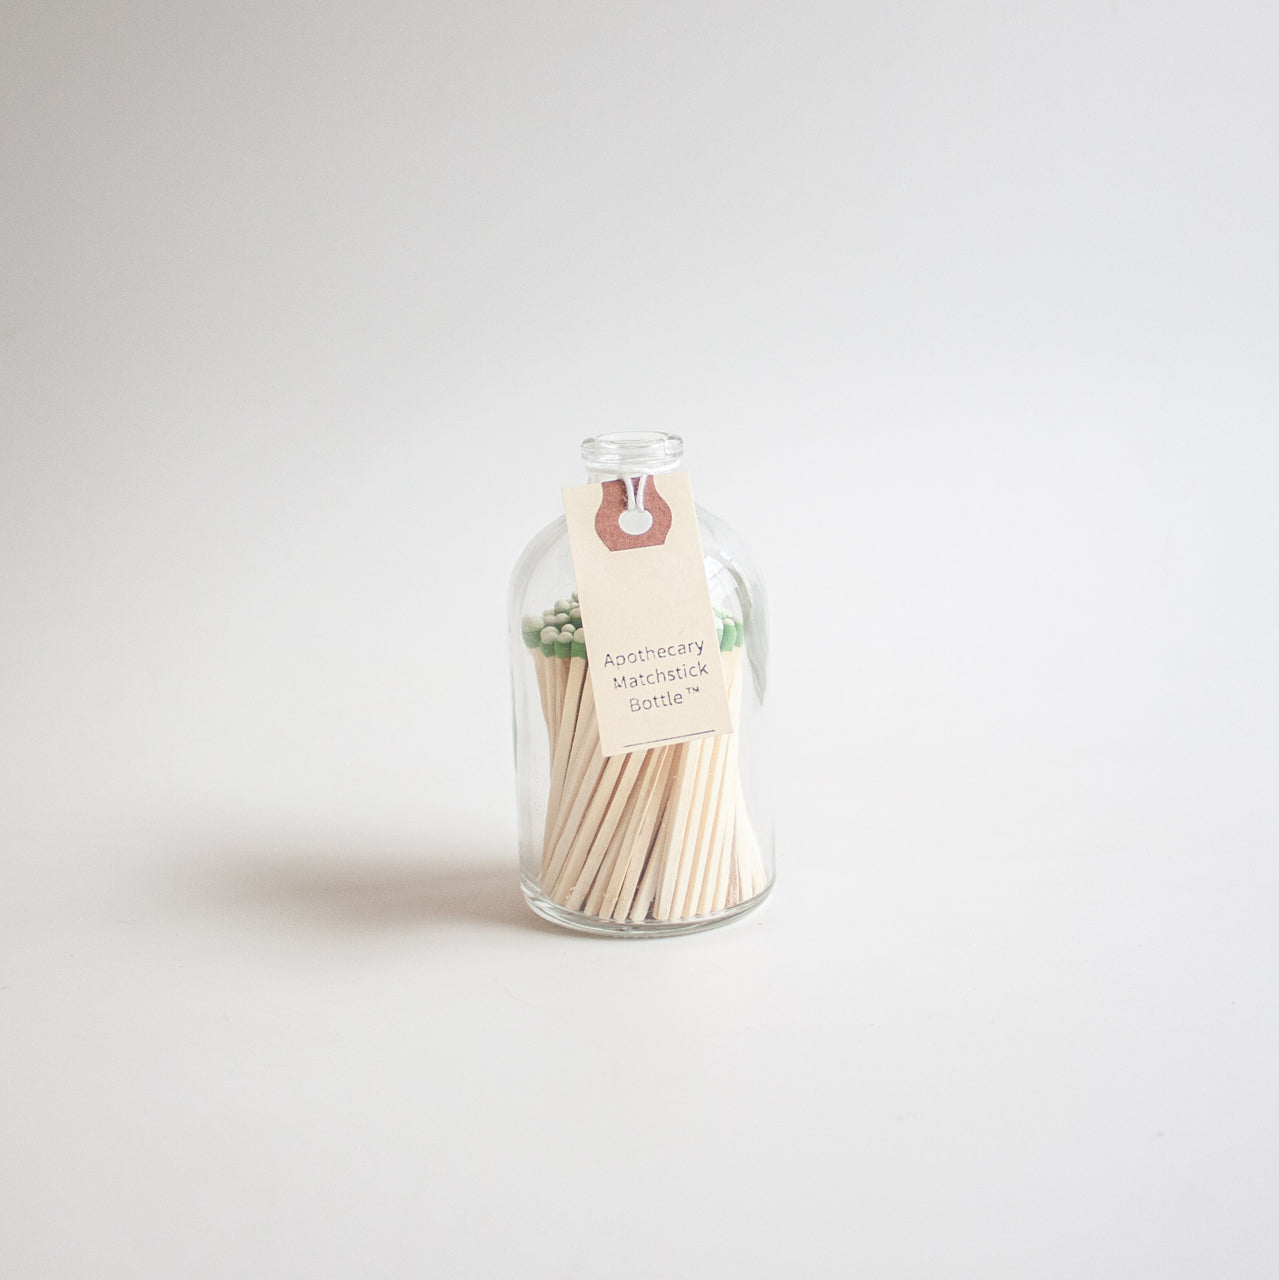 Strikeable Matchstick Bottle